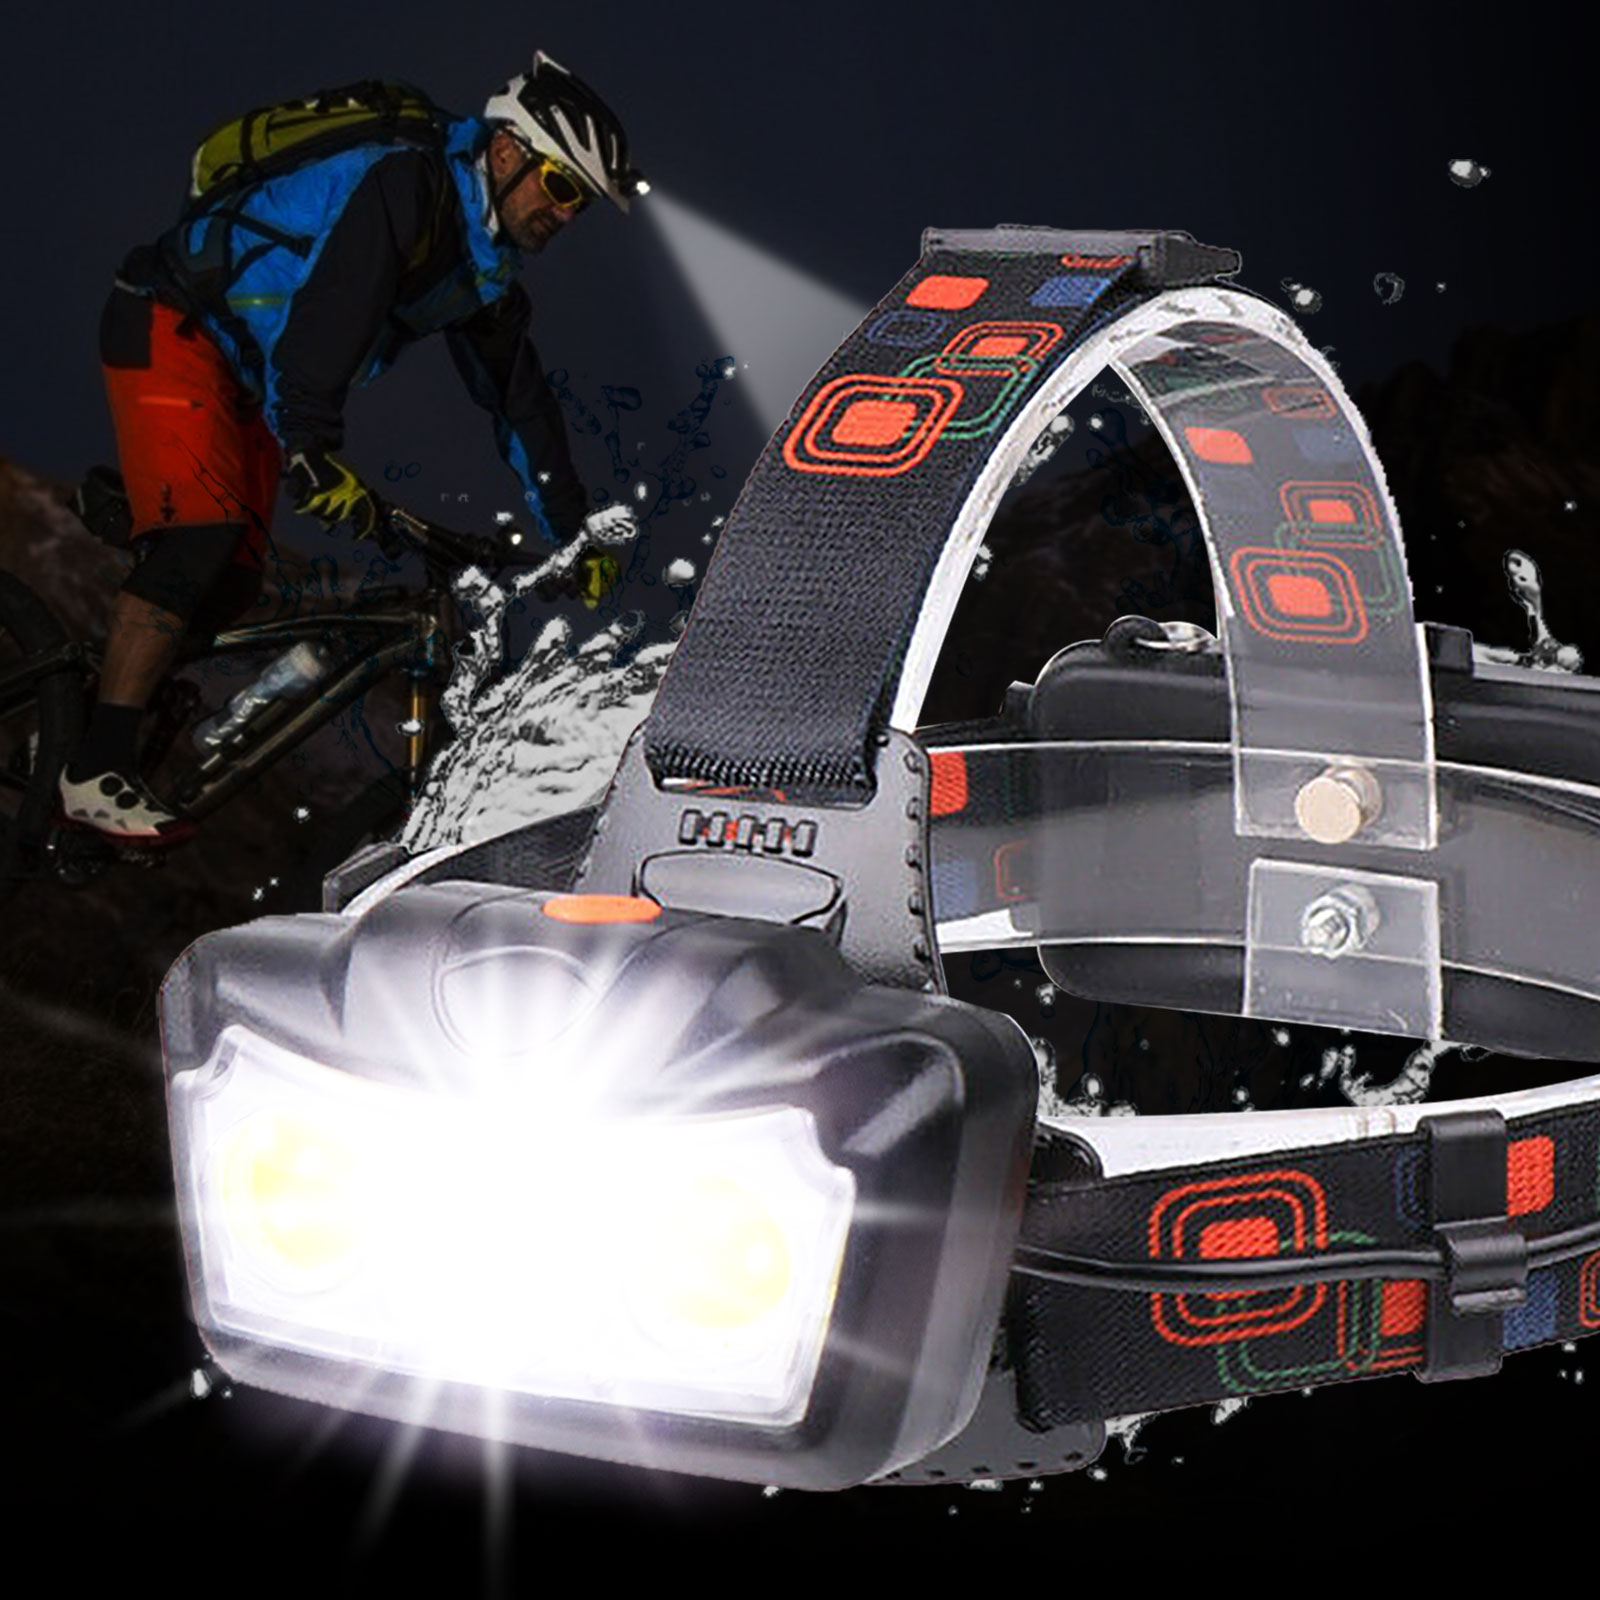 Able /& Handy 3W LED Headlight with Red rear safety light Batteries included